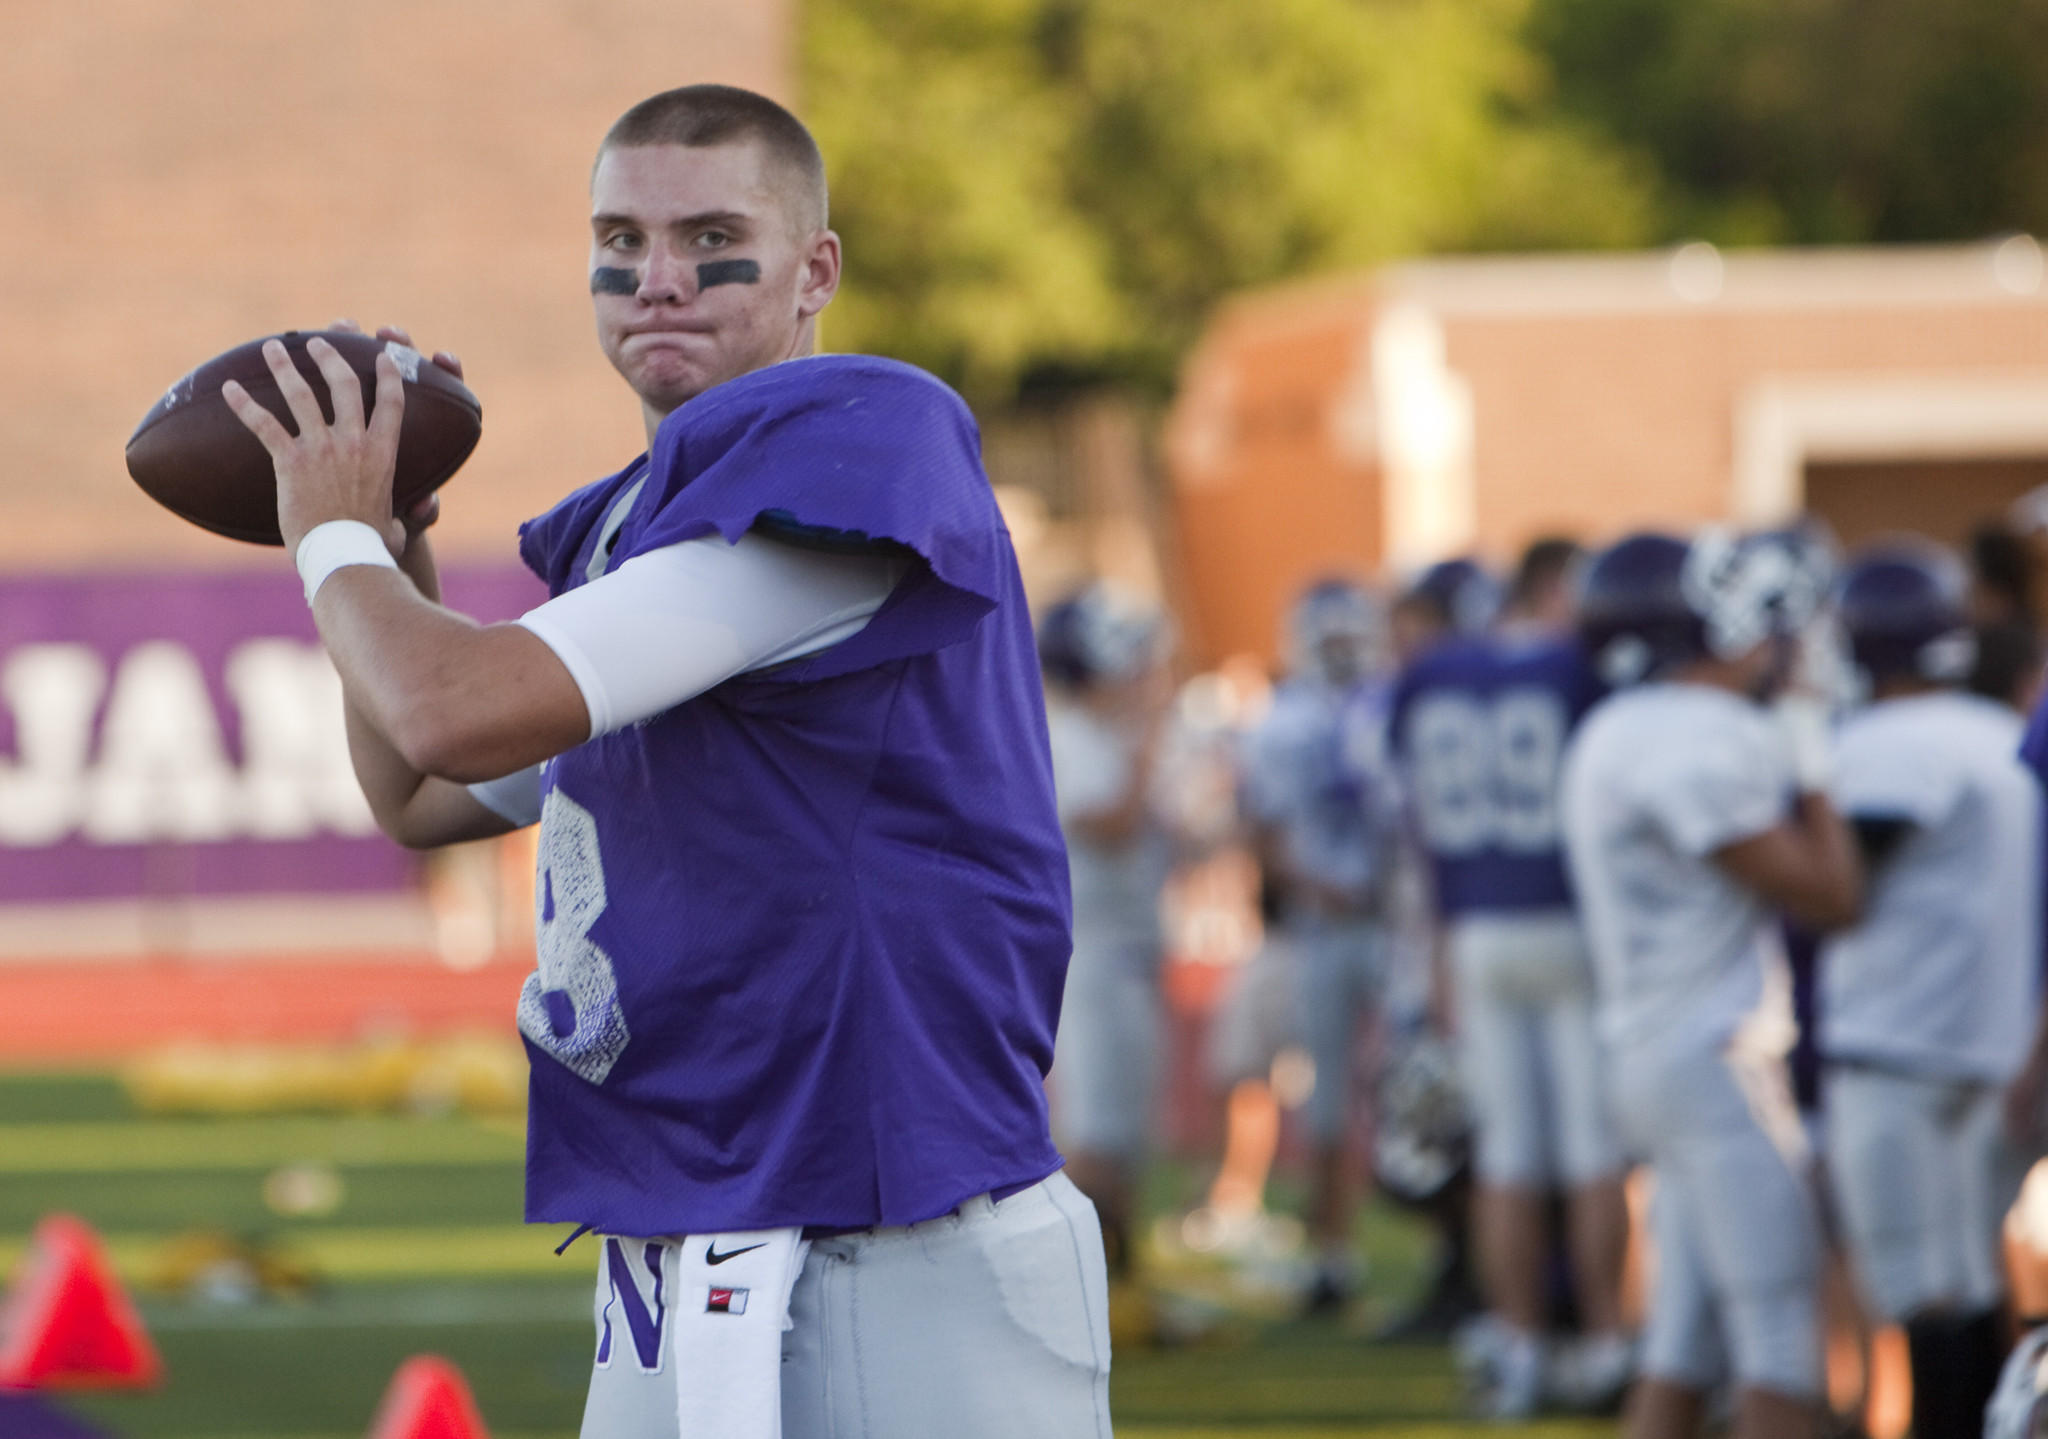 Downers Grove North quarterback David Edwards during a 2013 scrimmage.